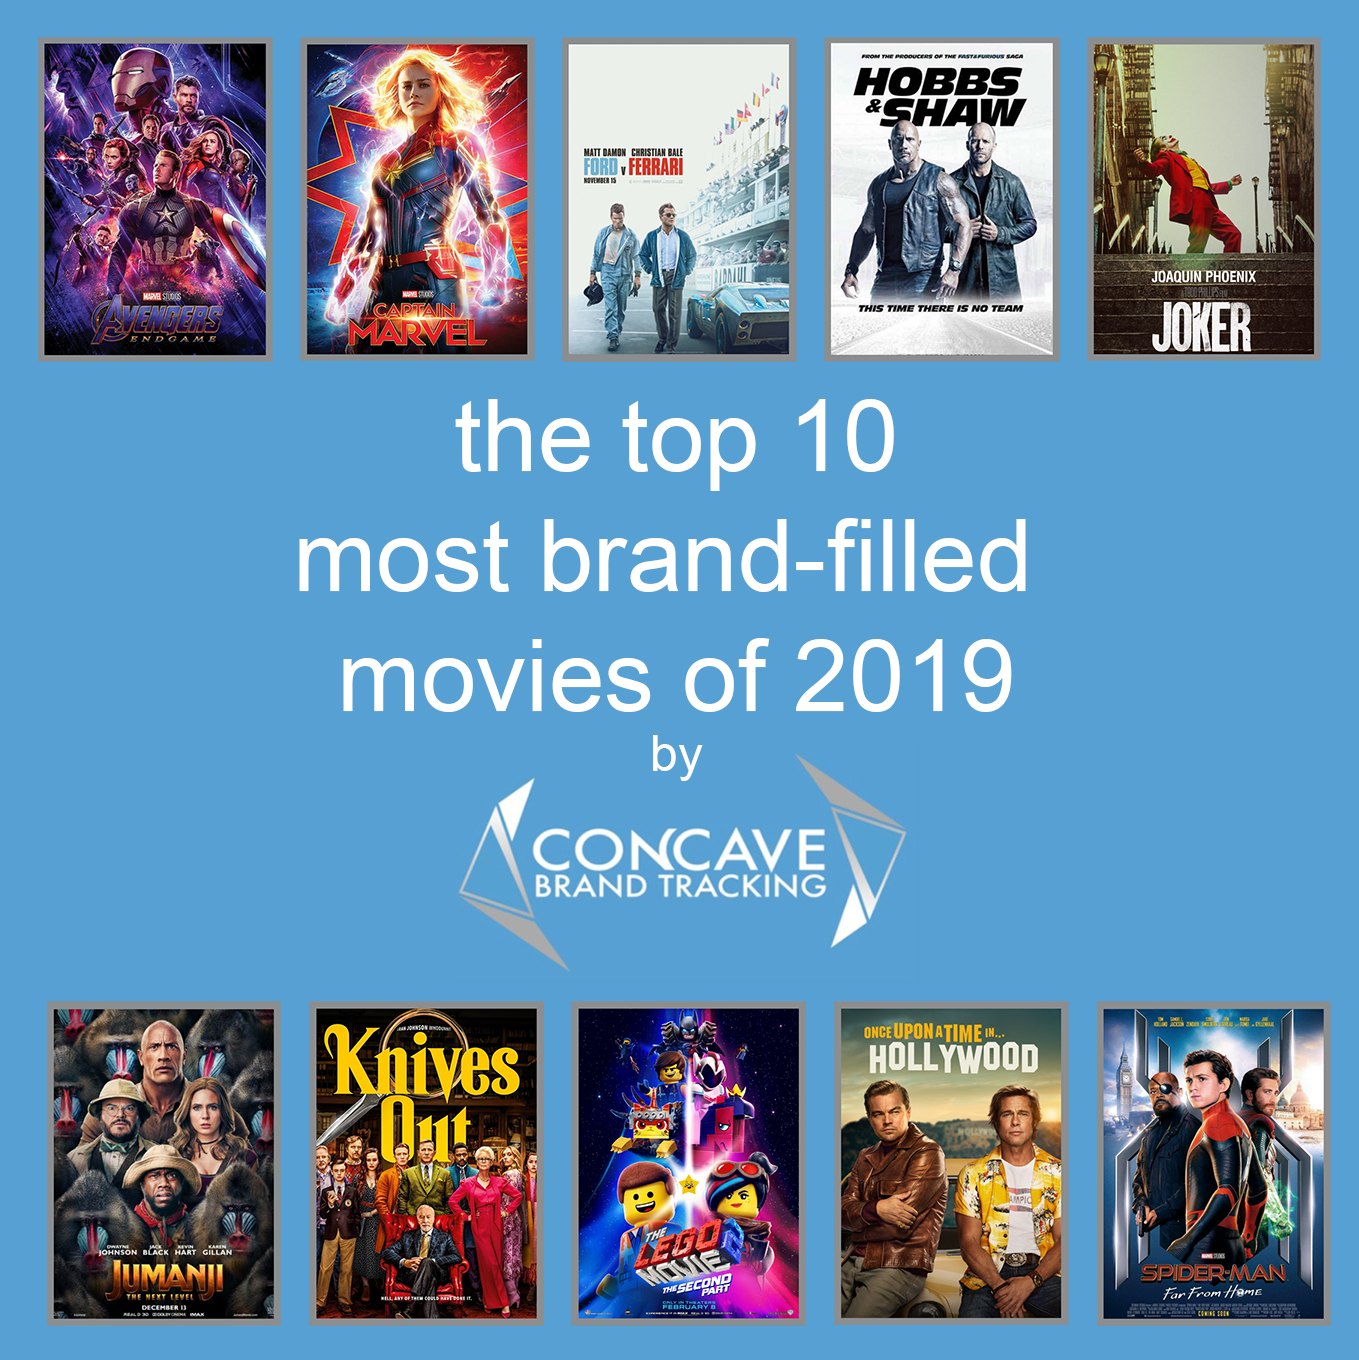 top 10 most product placement brand-filled movies of 2019